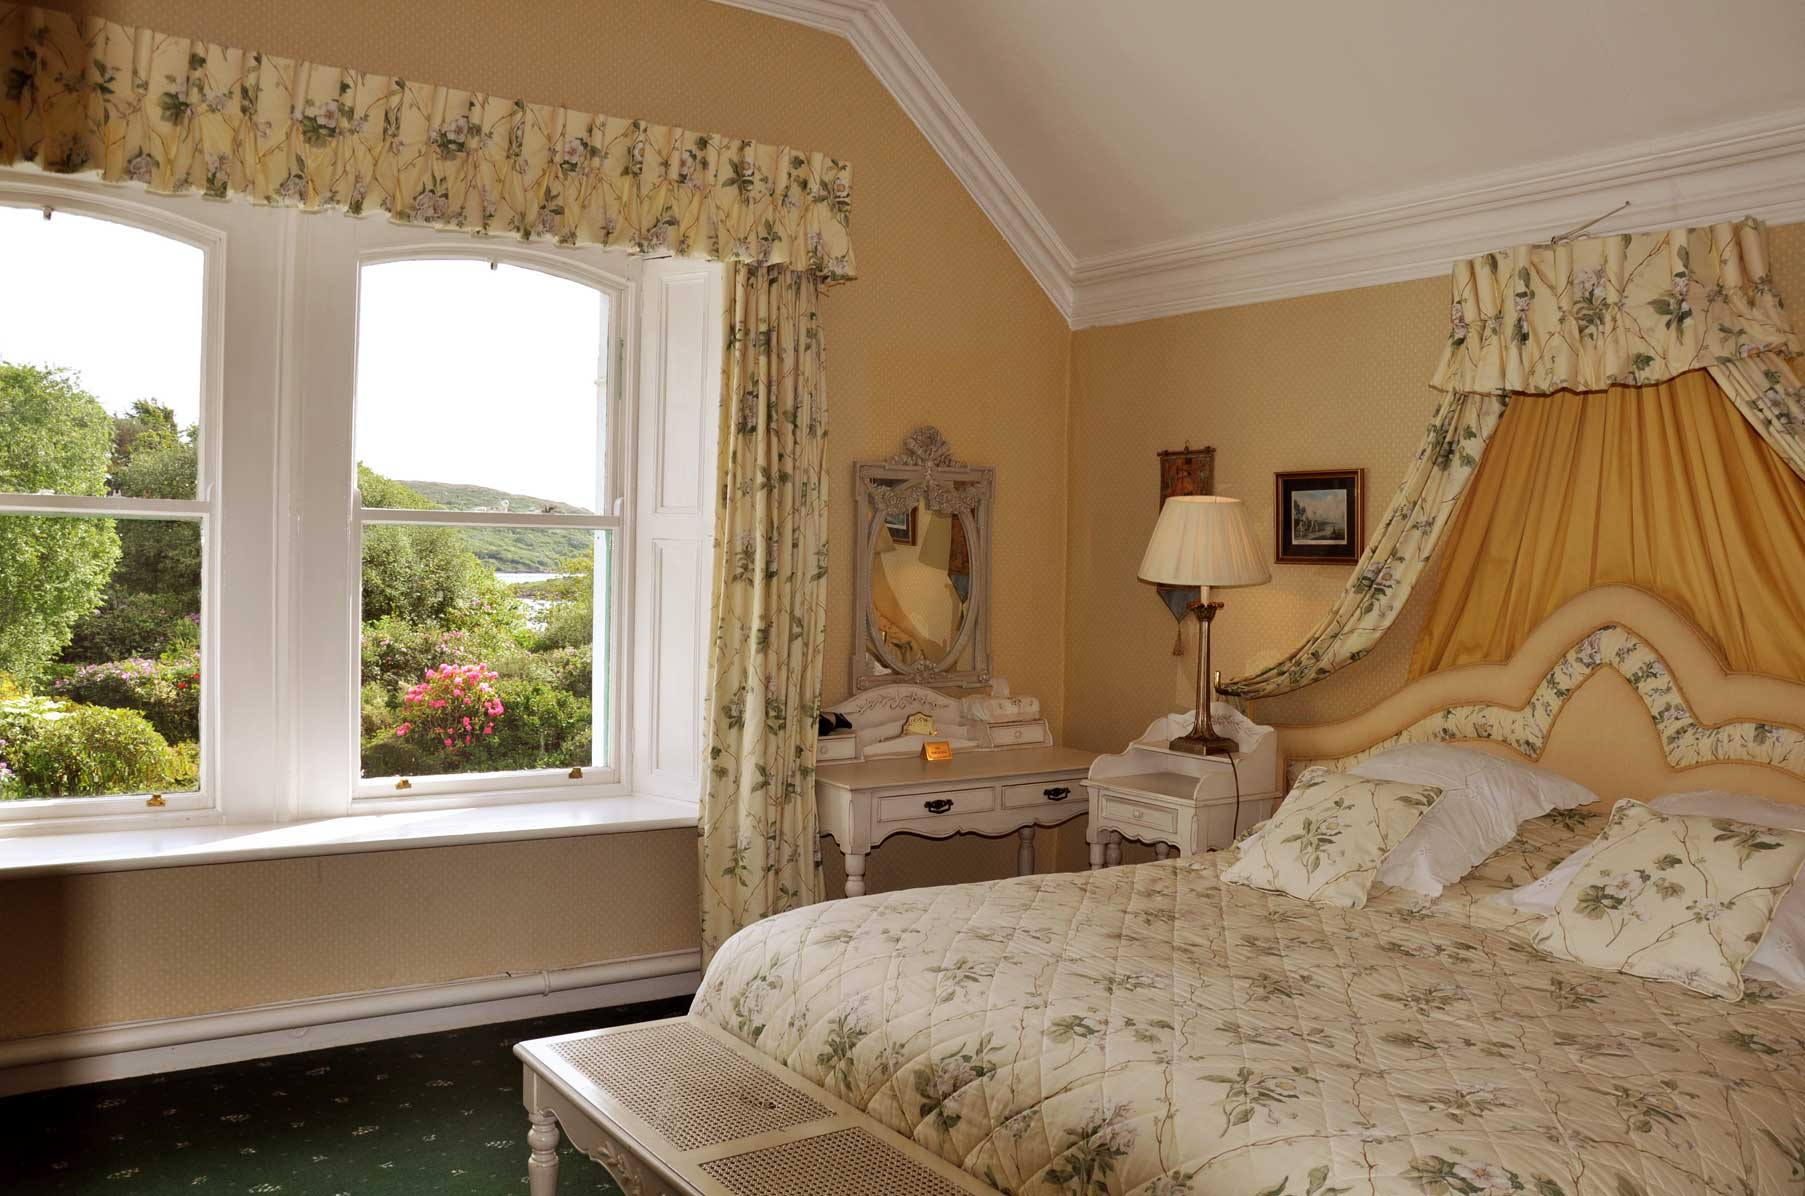 Historic Country House Hotel Accommodation Connemara, with sea views